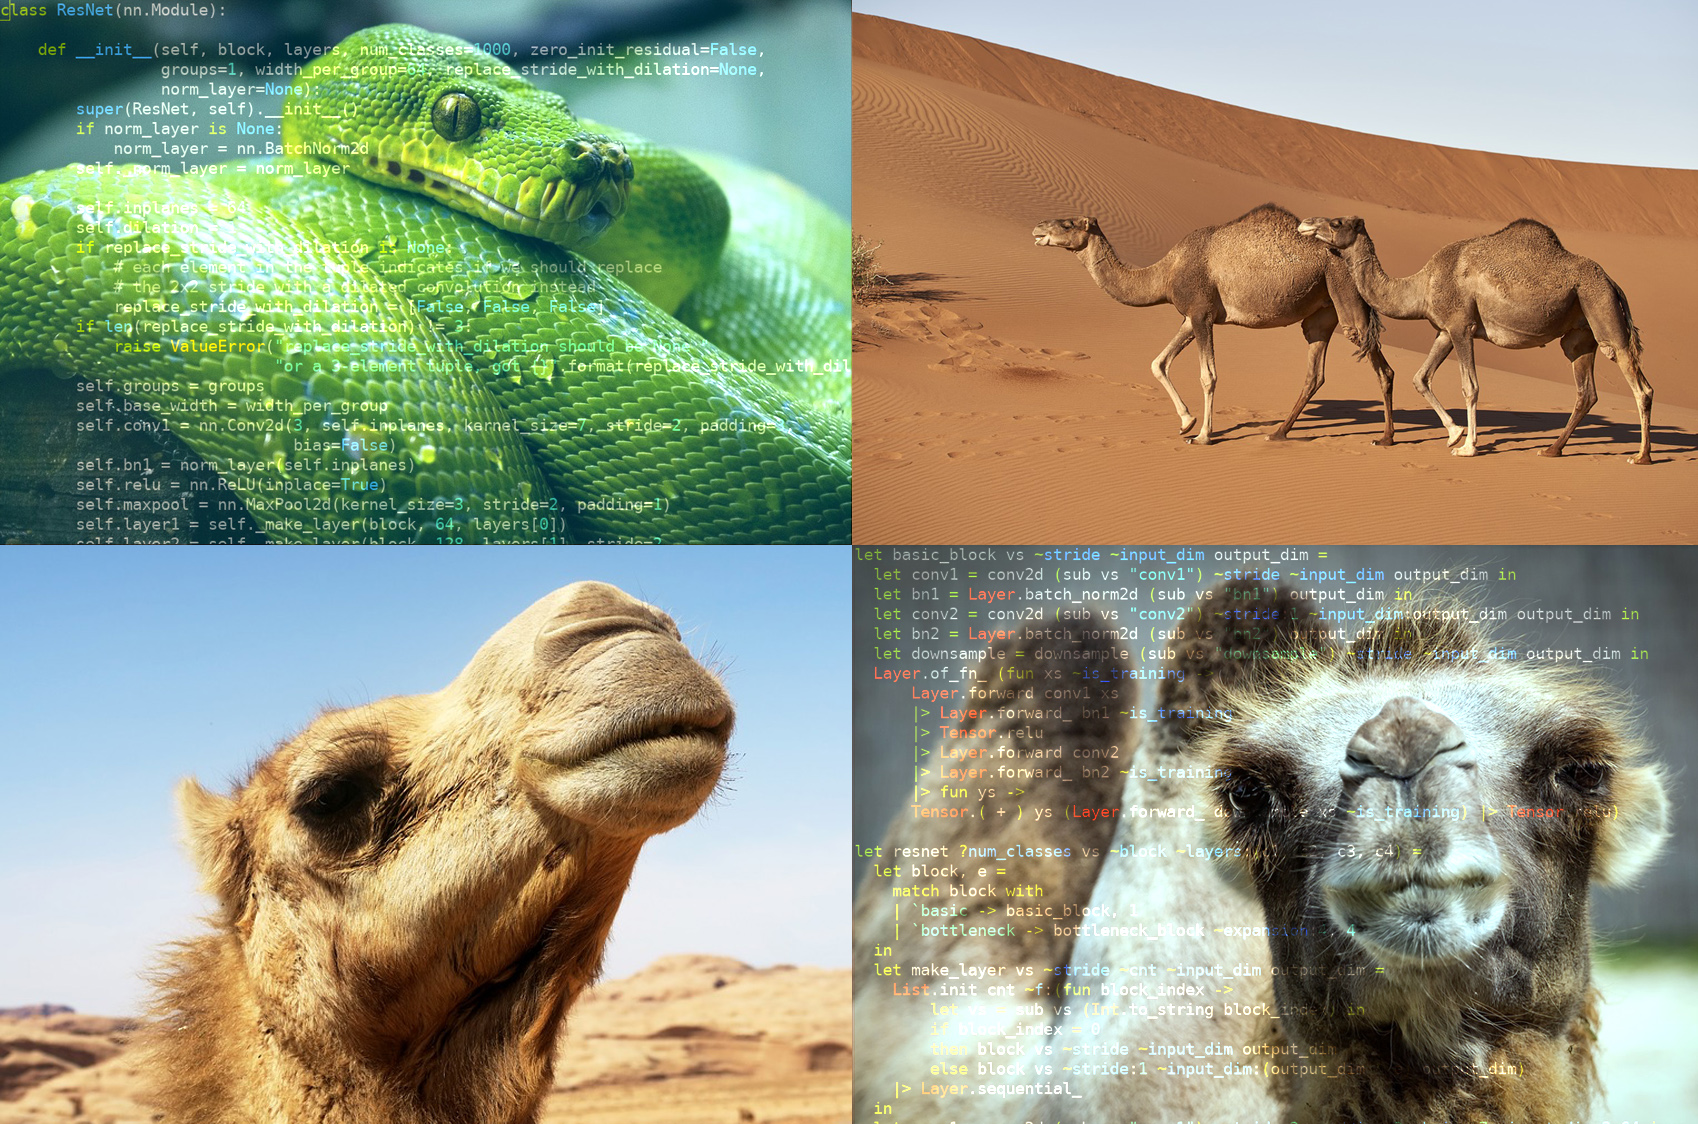 Jane Street Tech Blog - Of Pythons and Camels